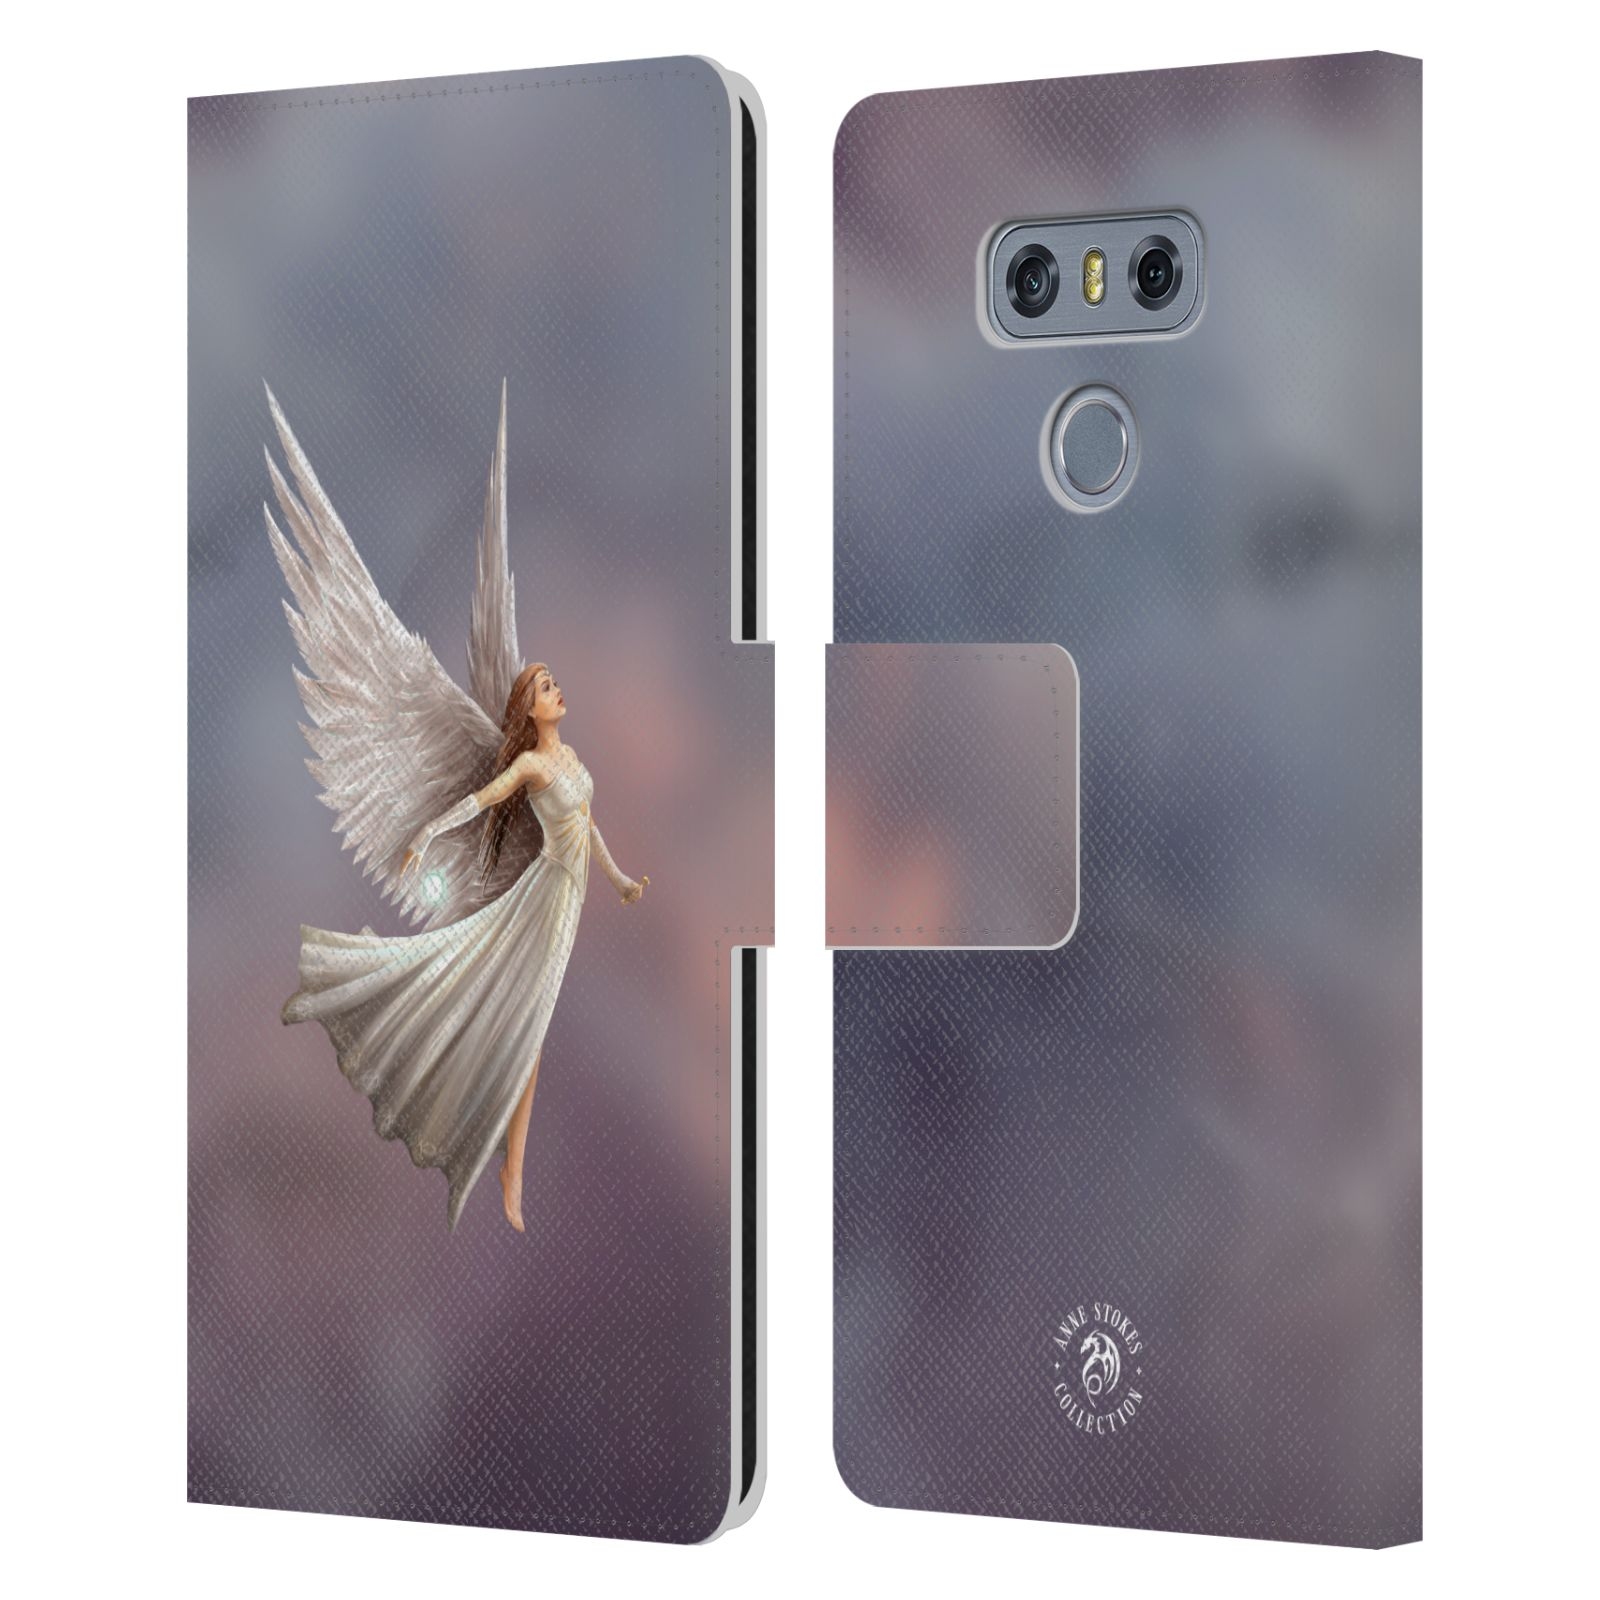 OFFICIAL-ANNE-STOKES-MERMAID-AND-ANGELS-LEATHER-BOOK-WALLET-CASE-FOR-LG-PHONES-1